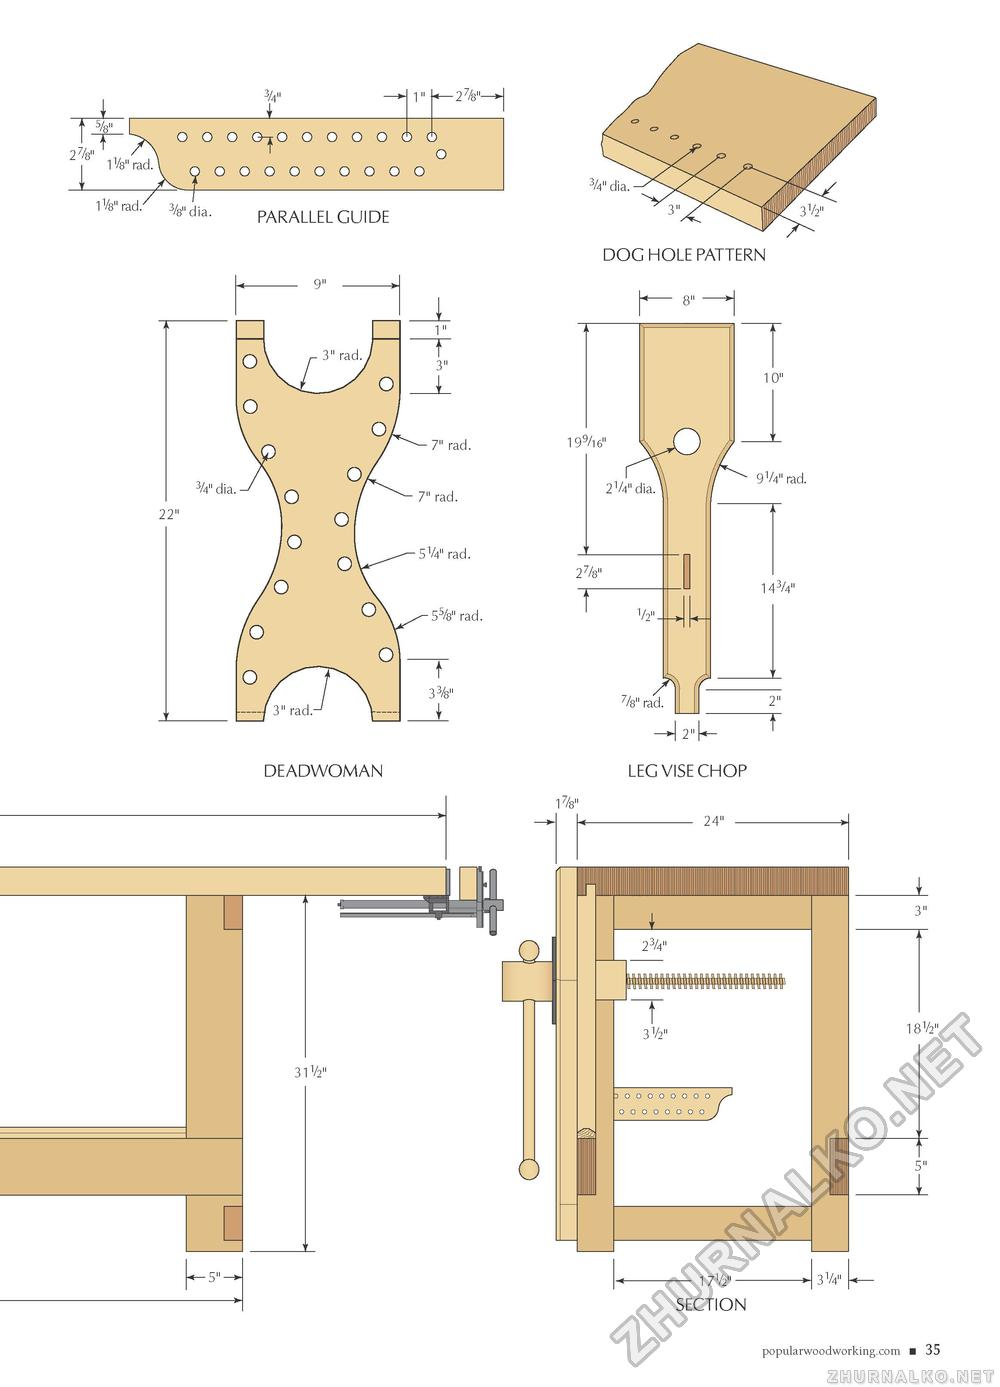 Popular Woodworking 2009-11 № 179, страница 25